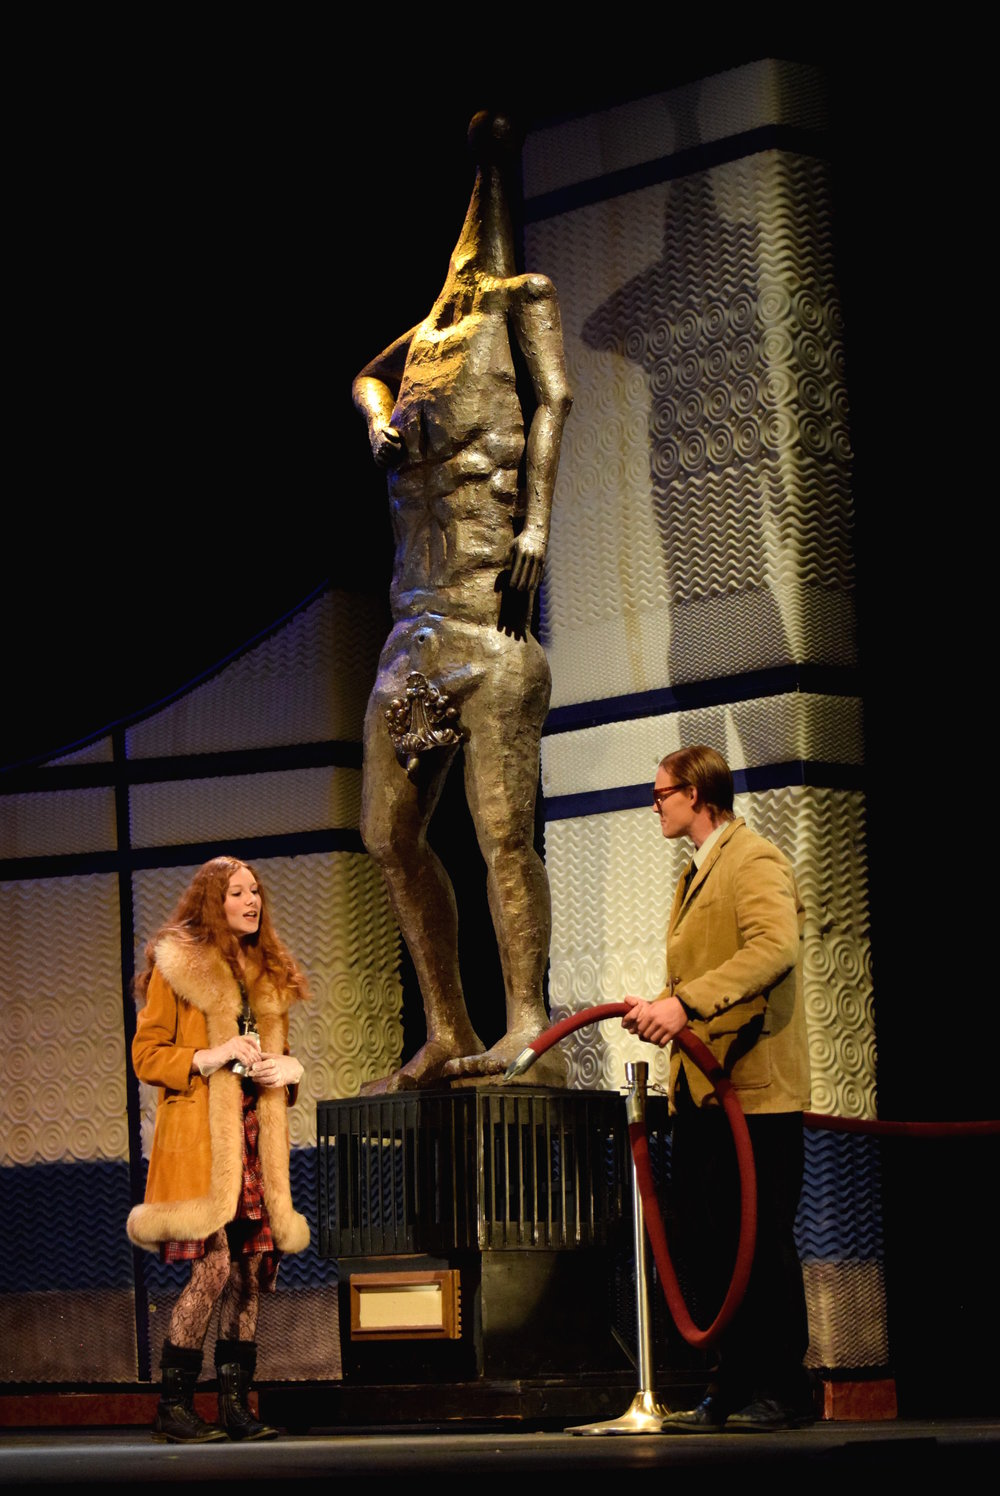 Evelyn and Adam discuss her plan to deface the statue.